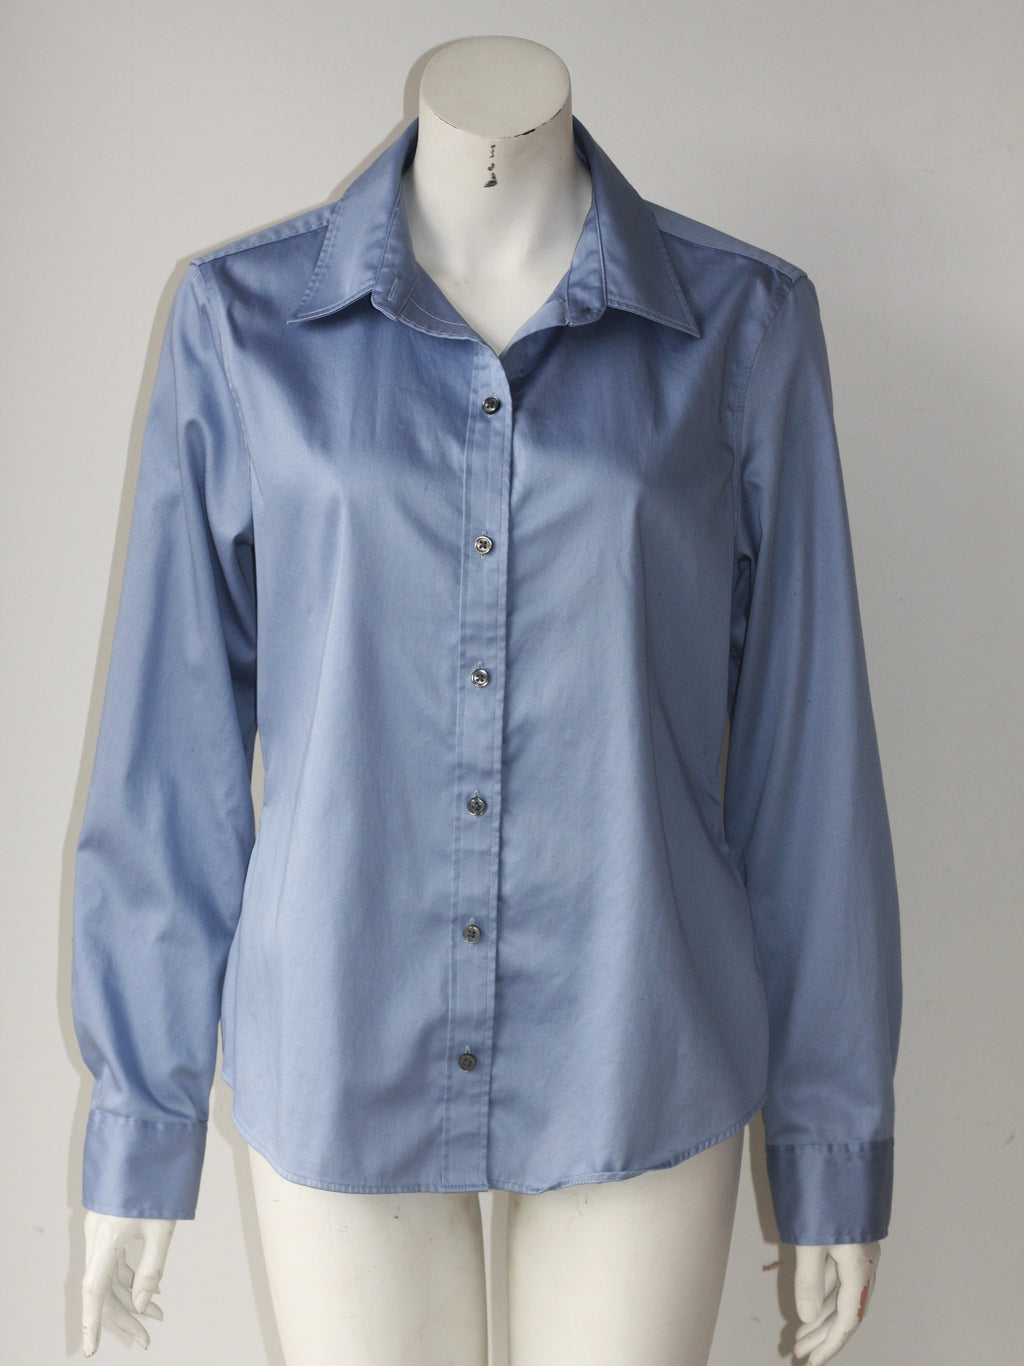 Banana Republic Blue Long Sleeve Button Up Shirt - Joyce's Closet  - 1